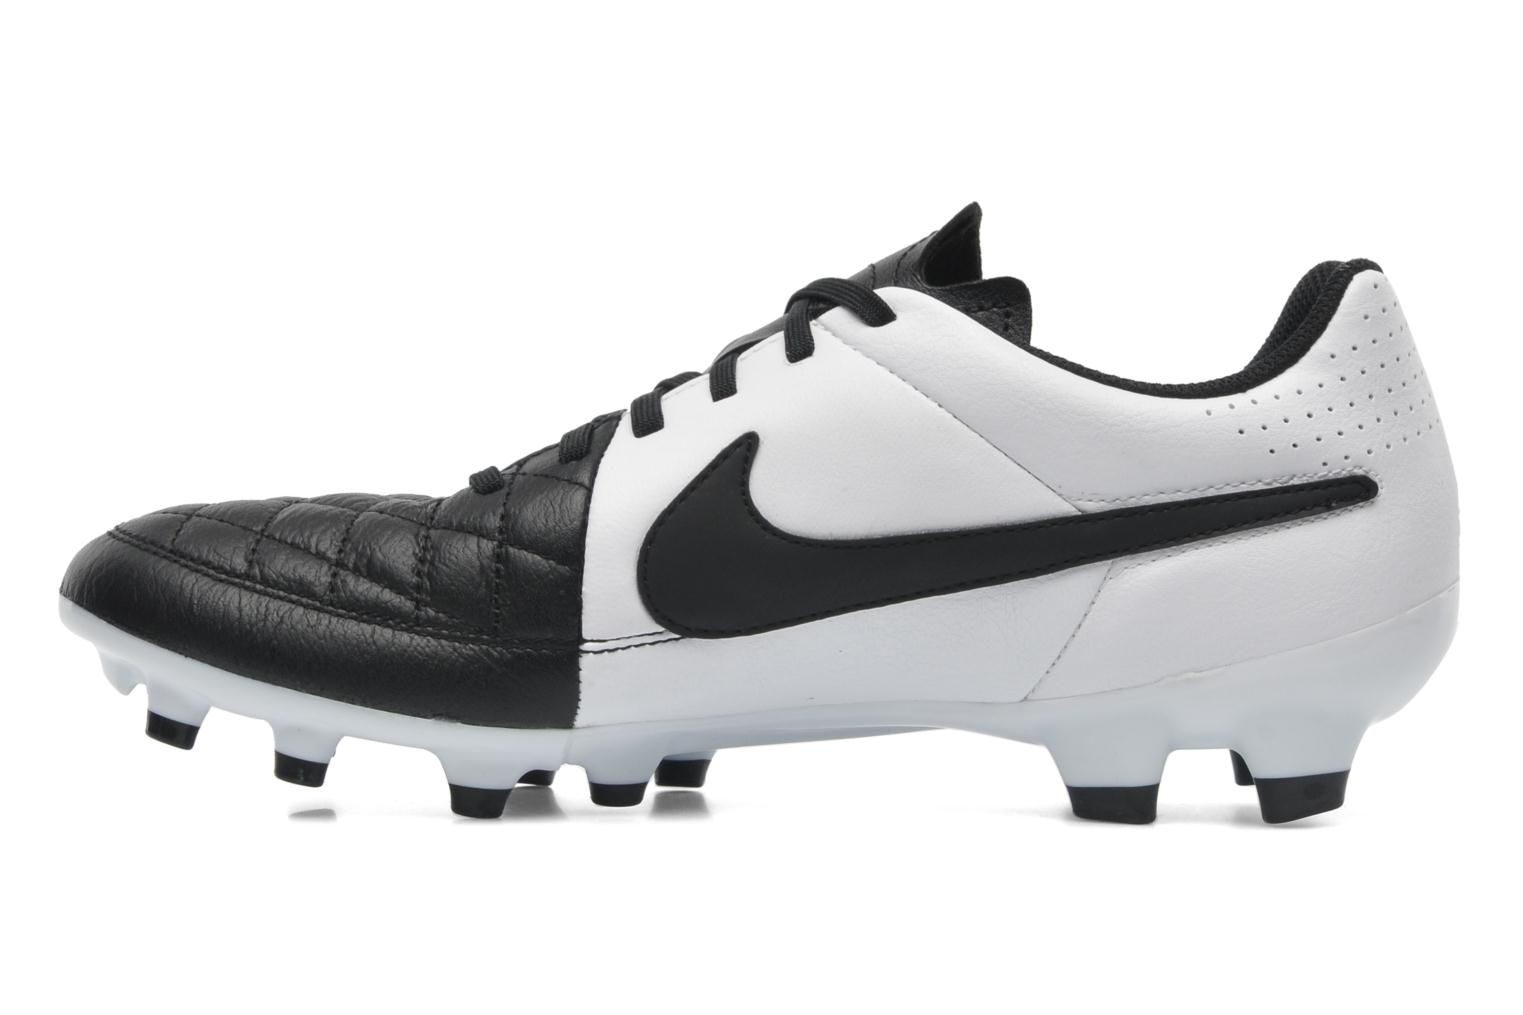 Tiempo Genio Leather Fg Black/white